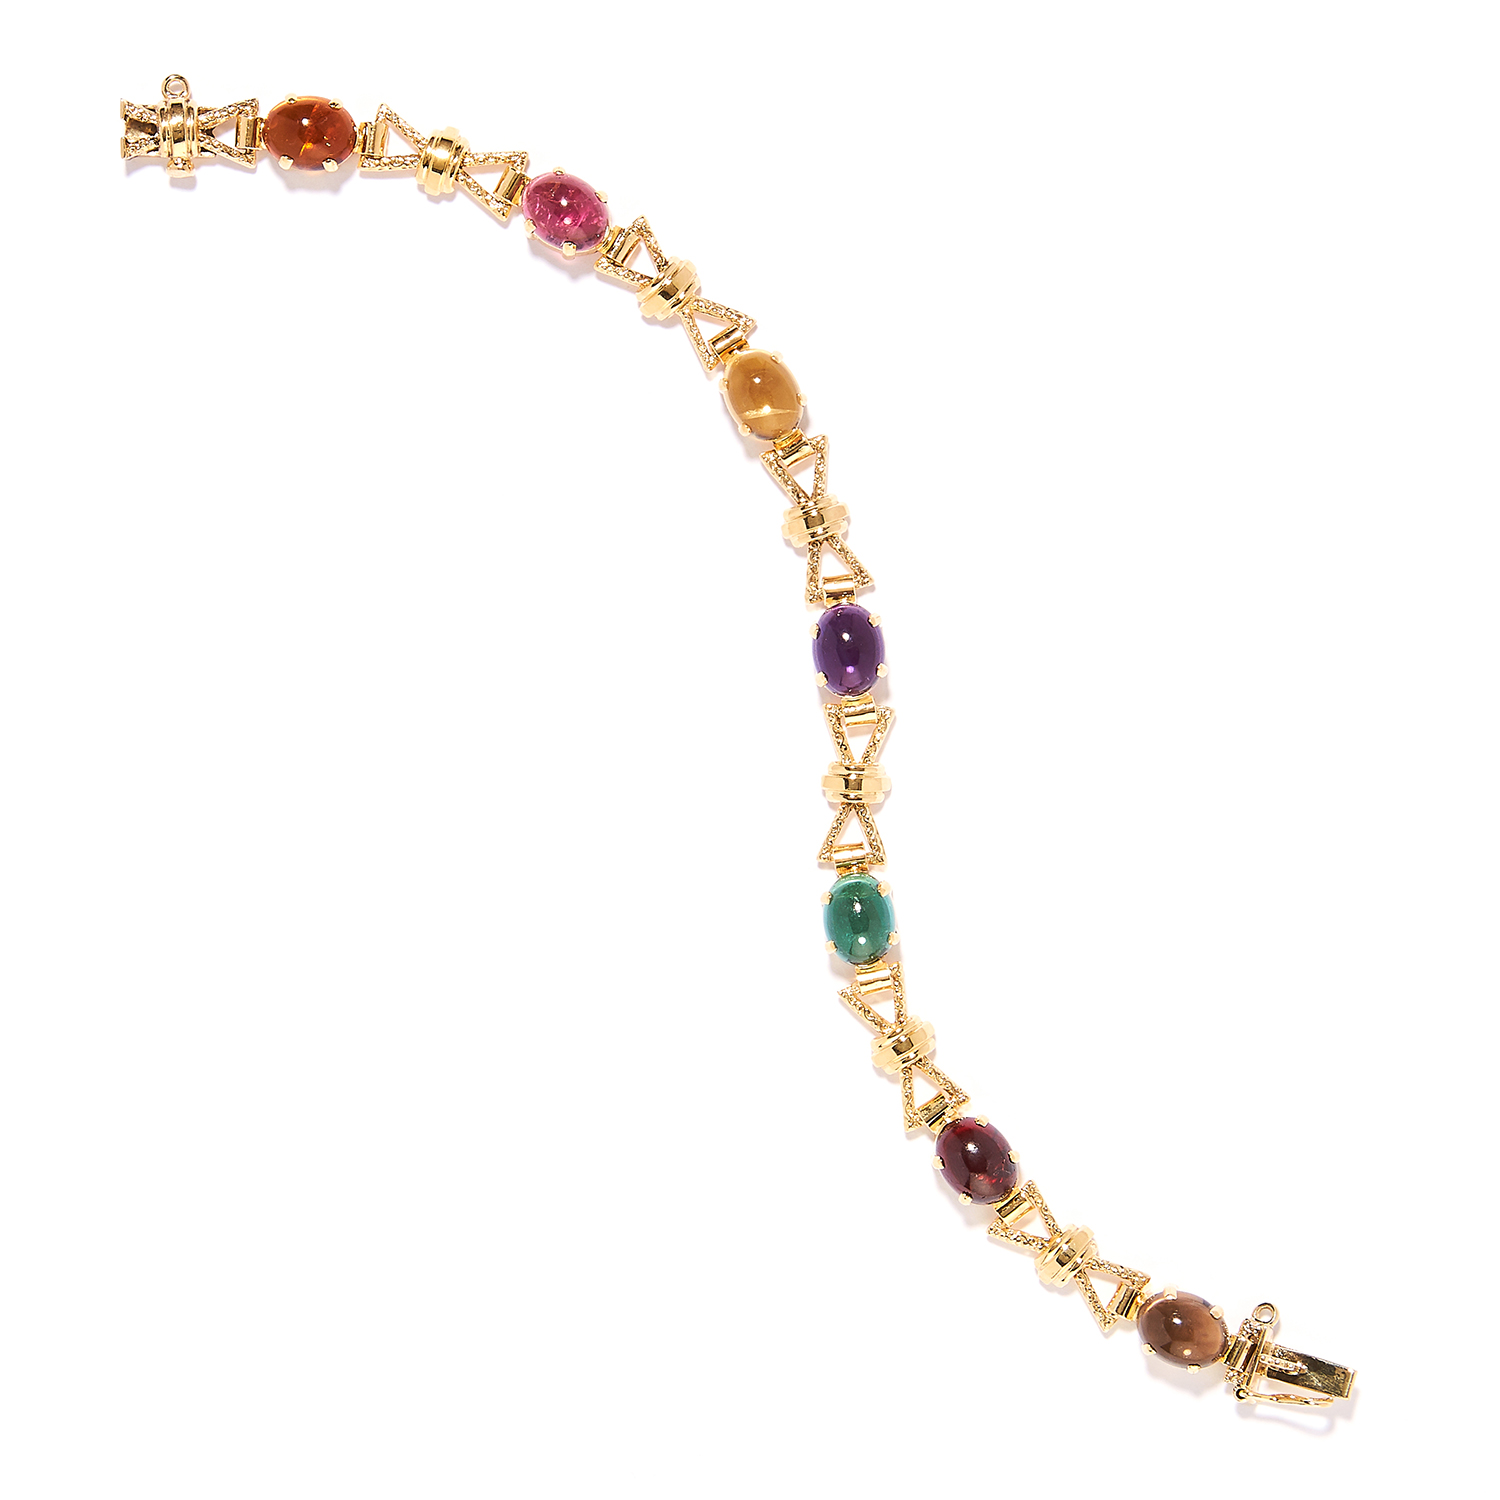 A GEMSET FANCY LINK BRACELET in yellow gold, set with various cabochon gems including amethyst,